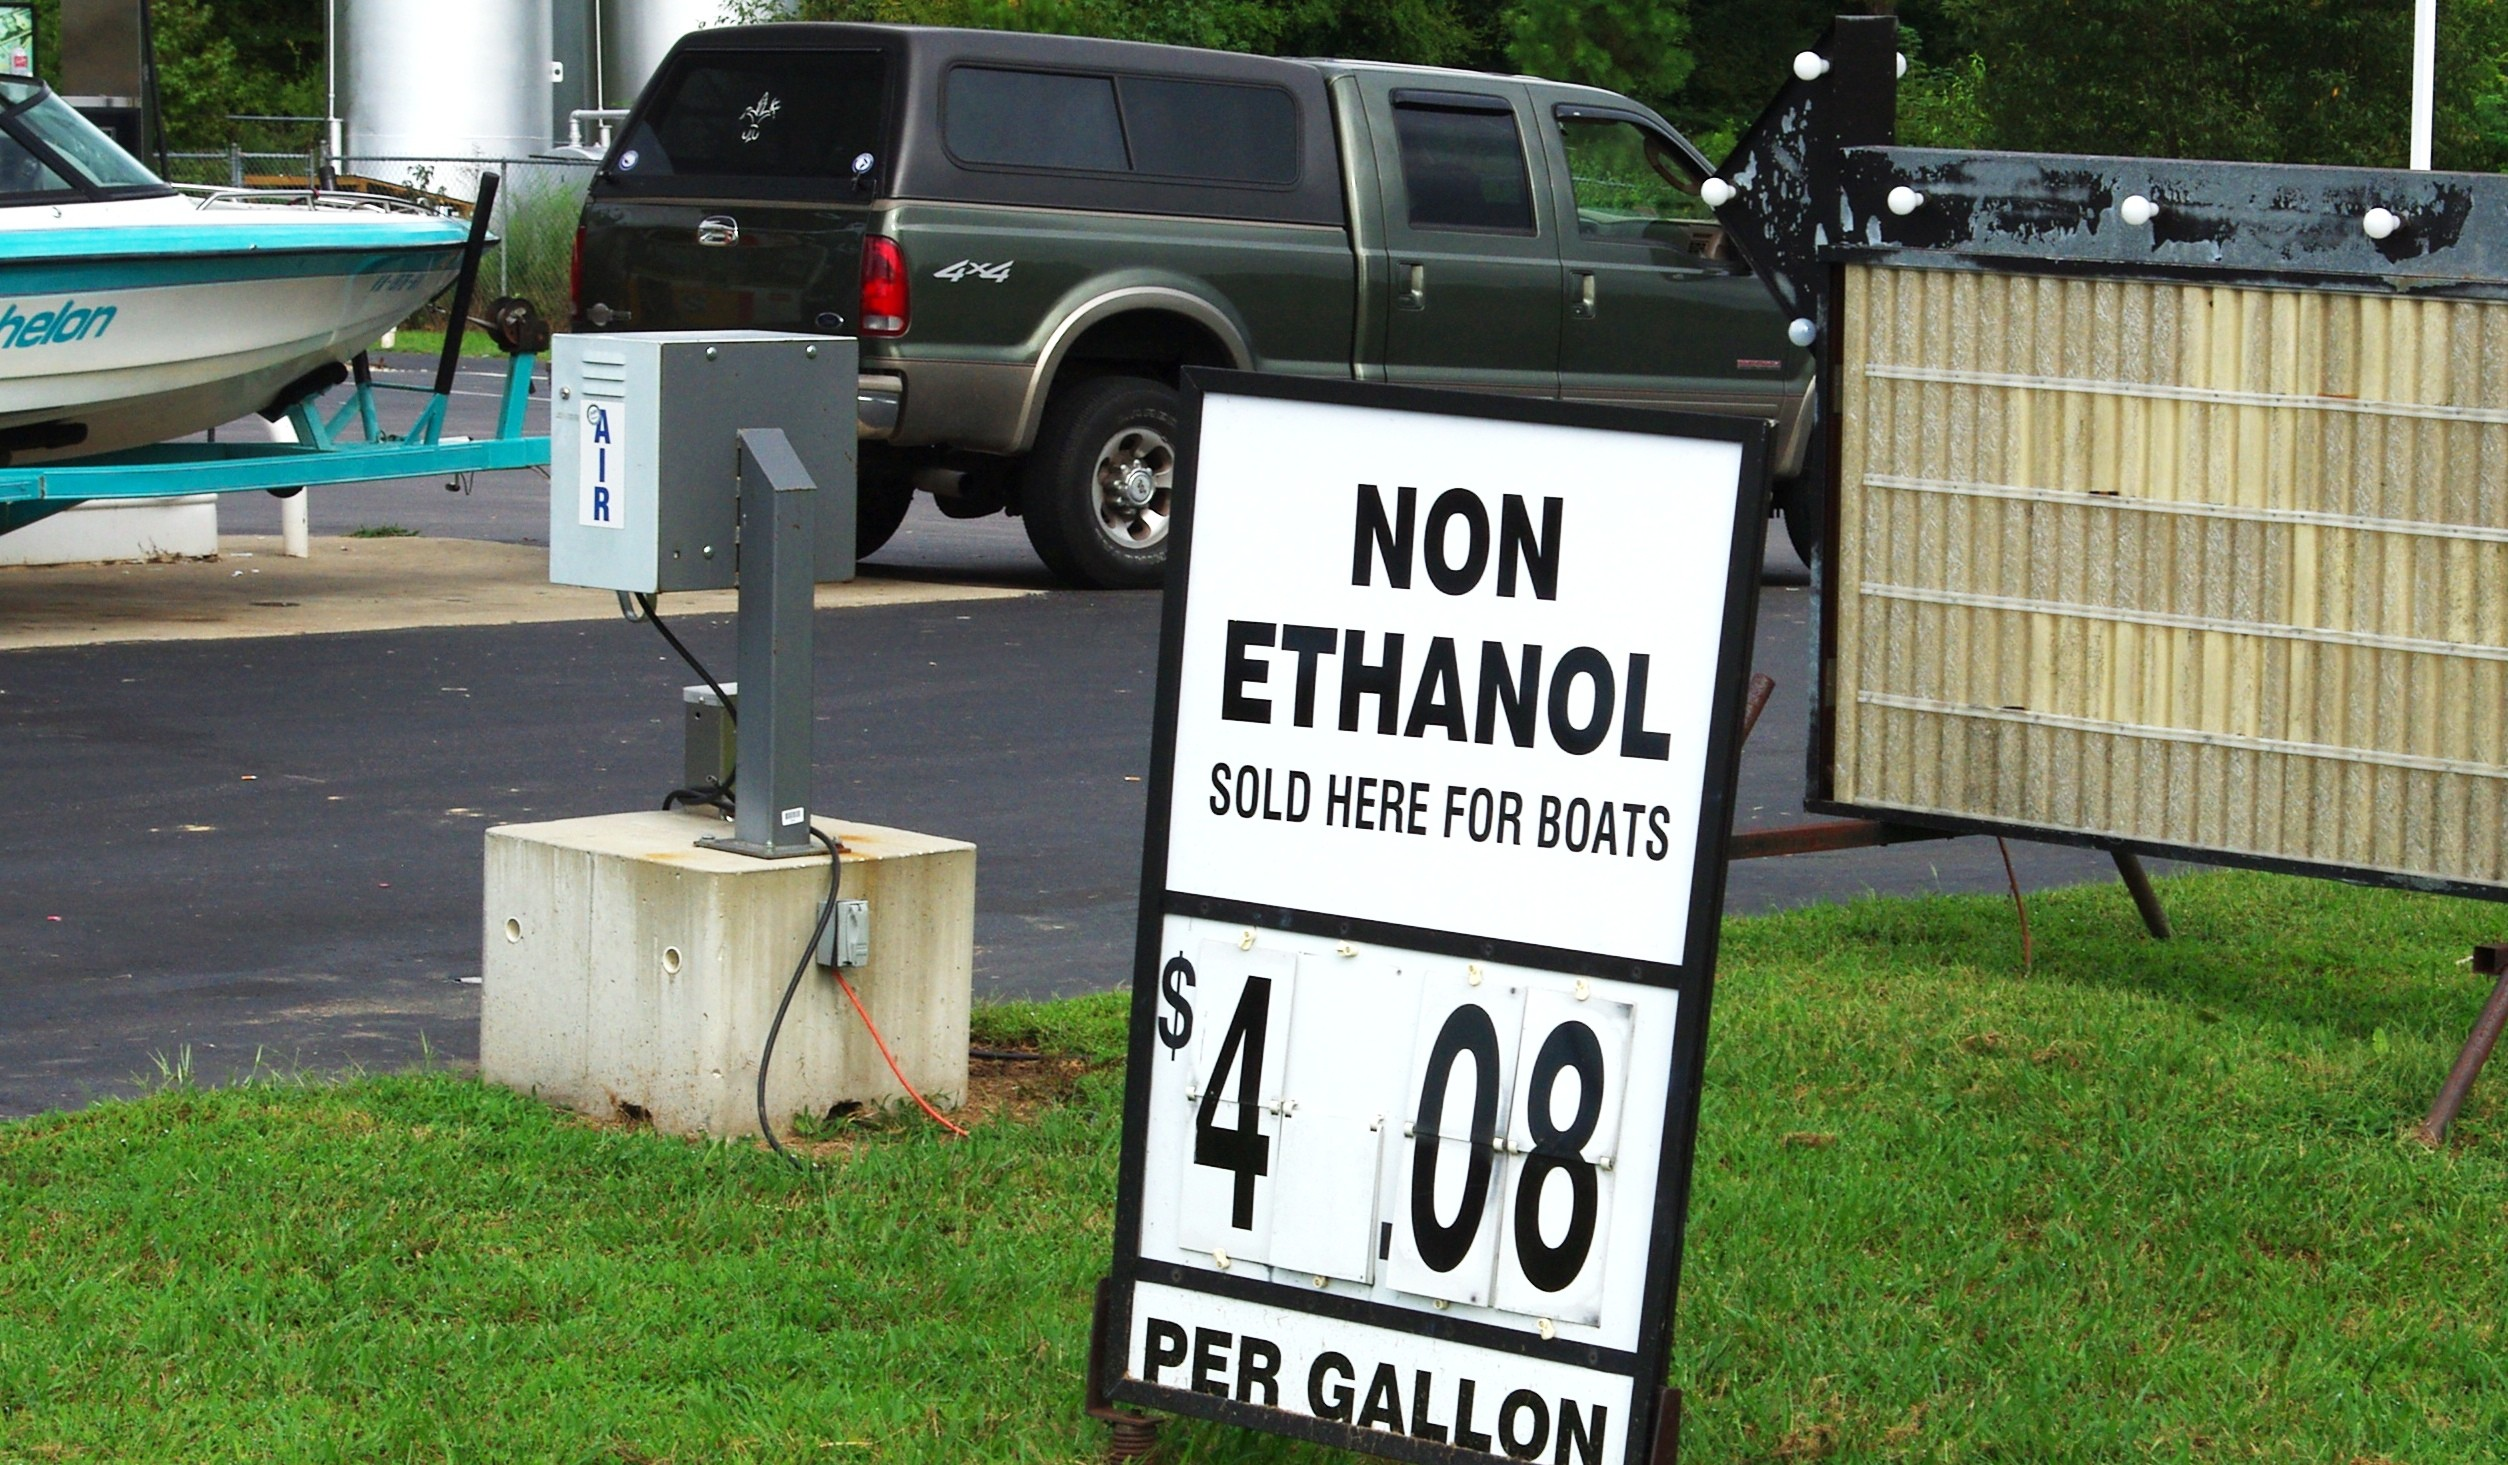 Non Ethanol Gas Near Me >> Winterizing Boats And Motorcycles With Ethanol Blended Gas